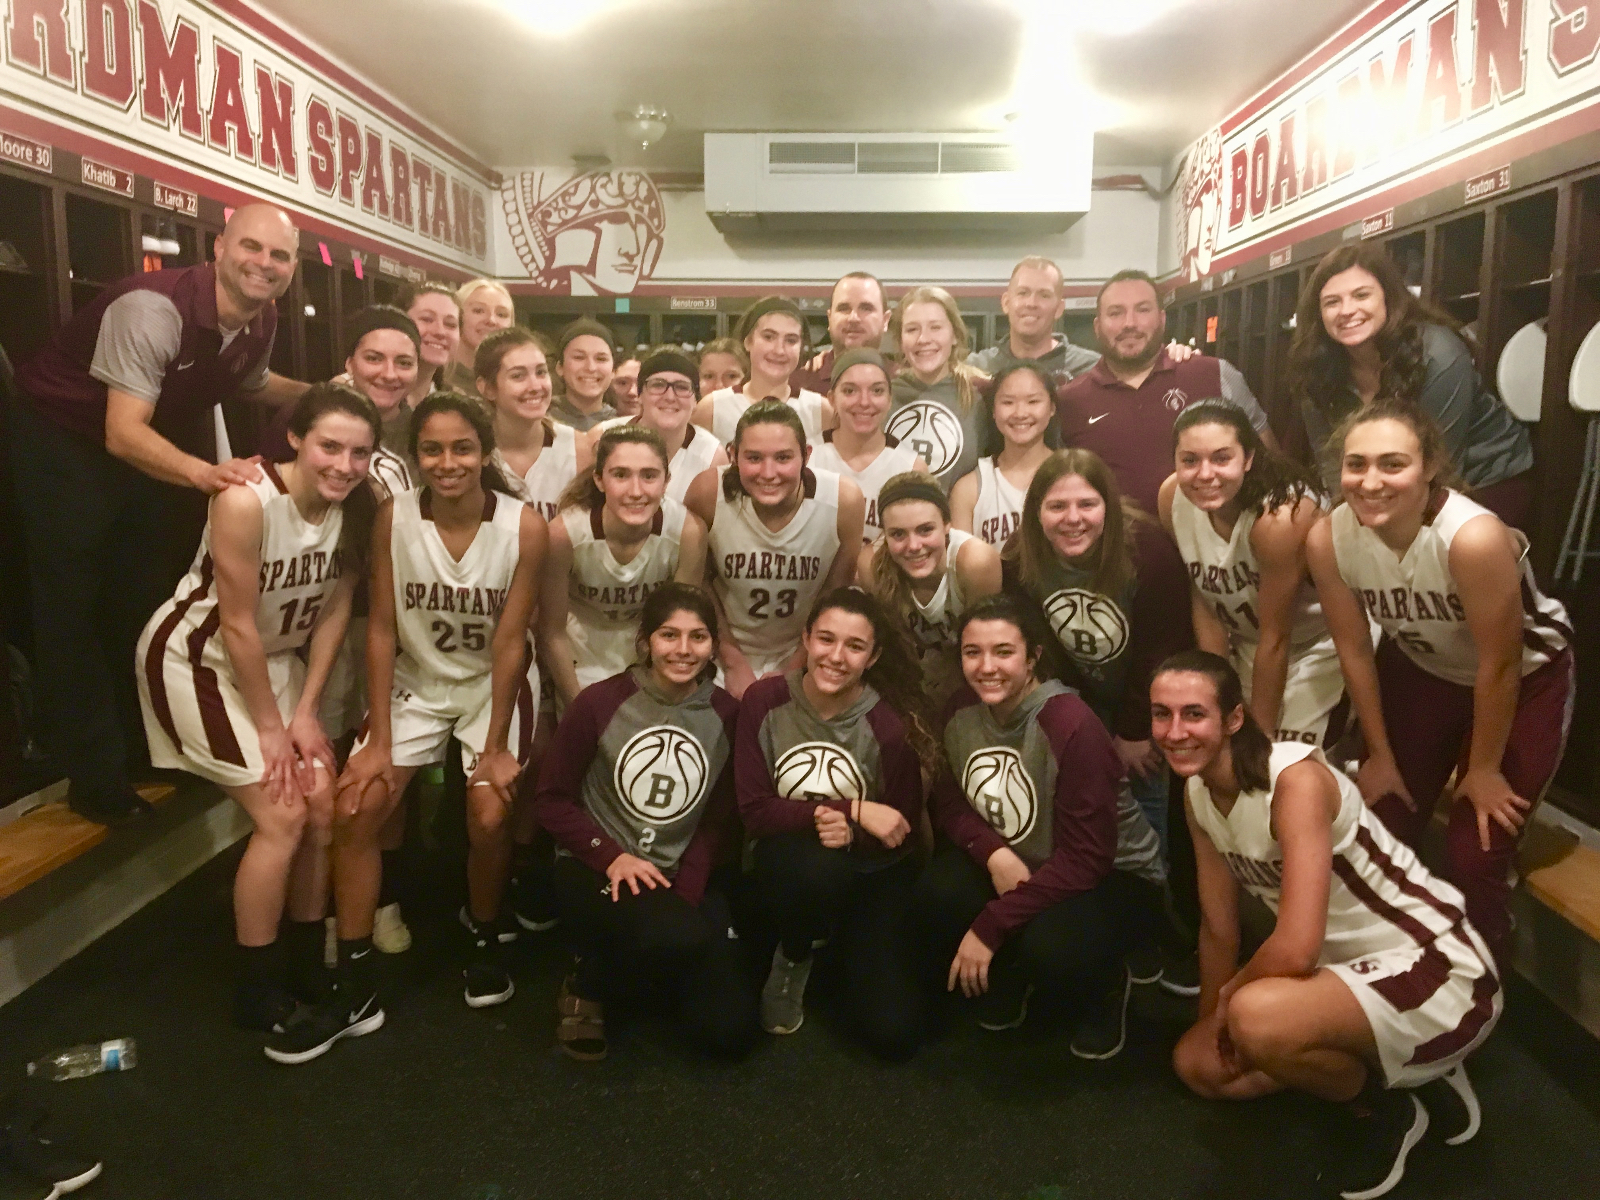 Girls Basketball Team Play Fitch Tonight at Fitch – Game is Being Broadcast As Game of The Week